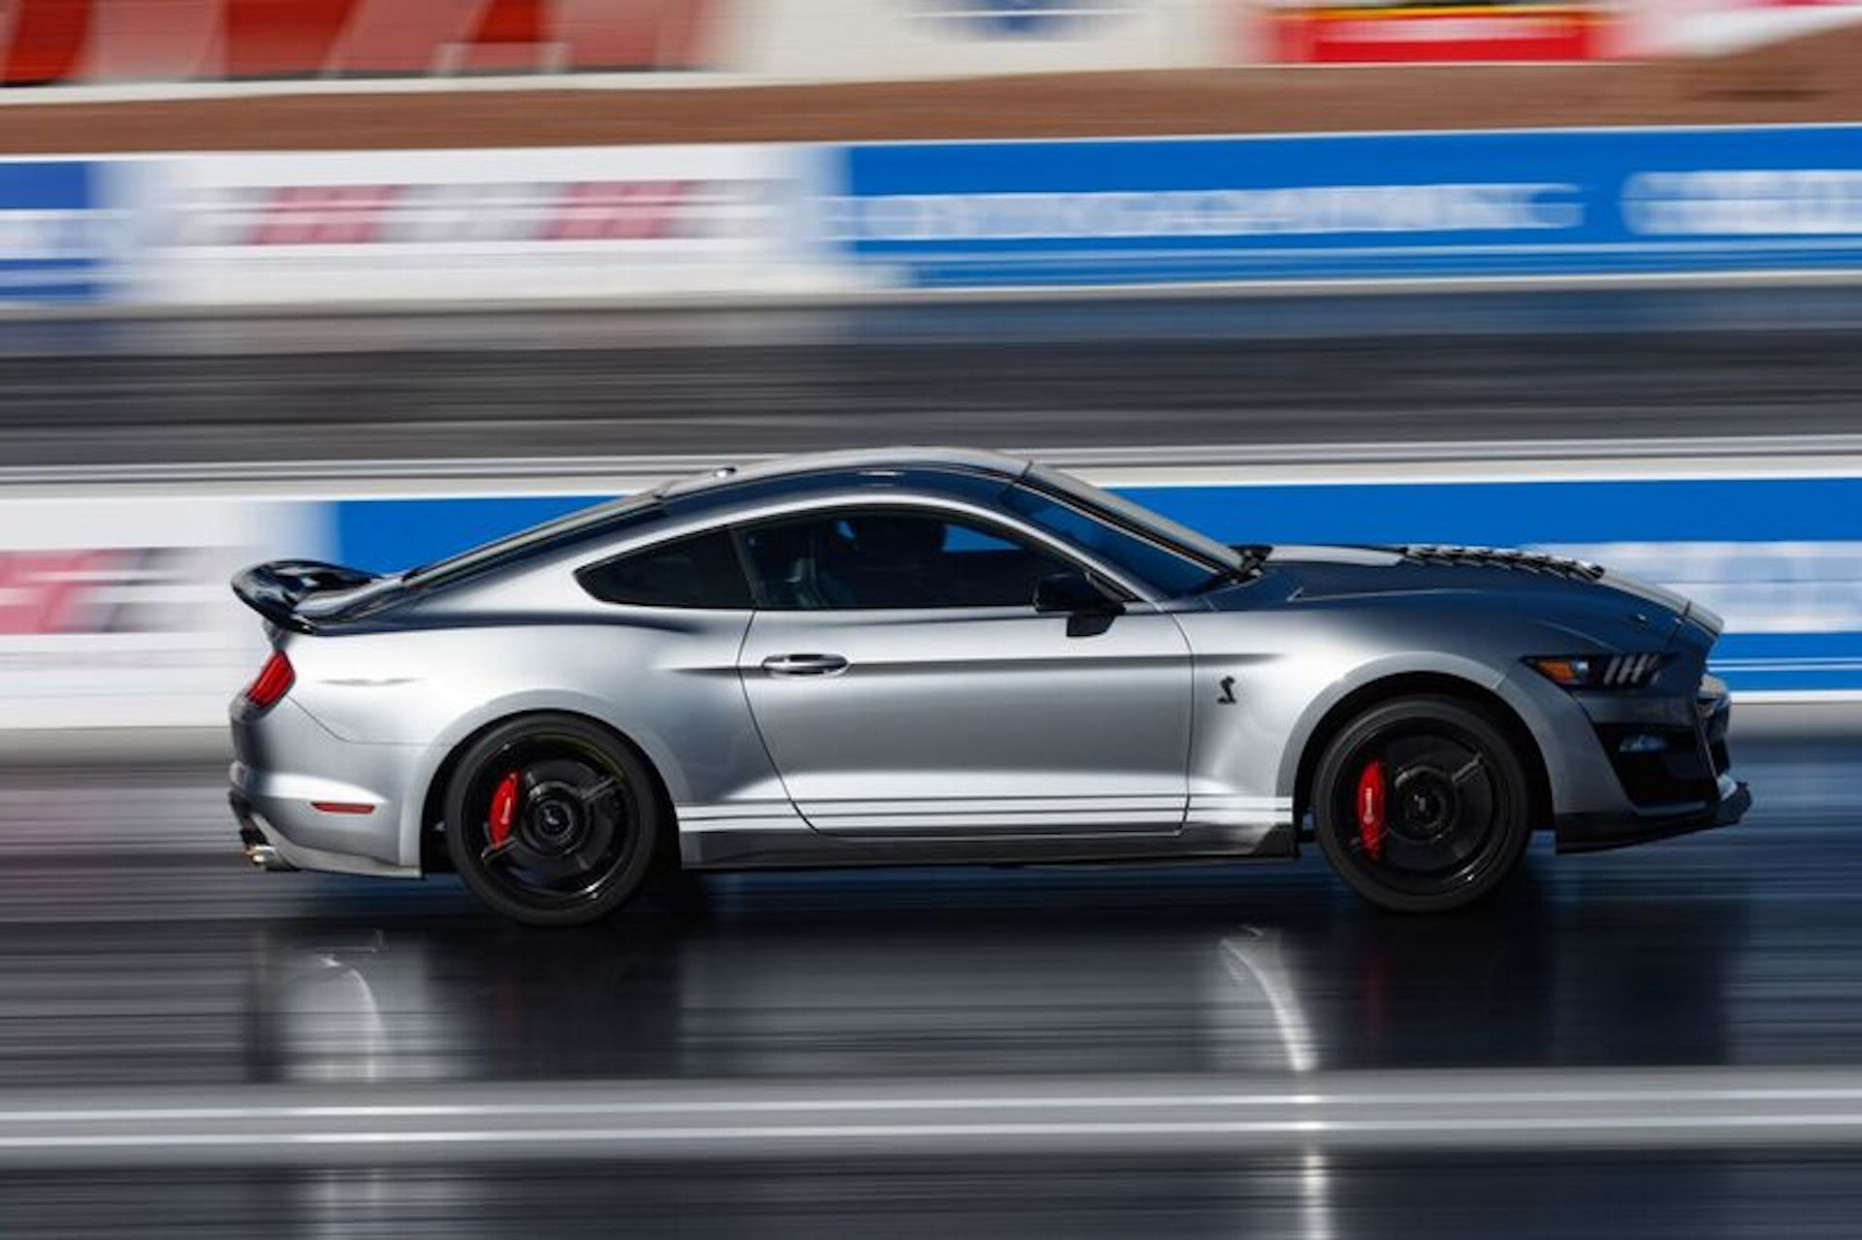 Redesign and Review 2022 Mustang Mach